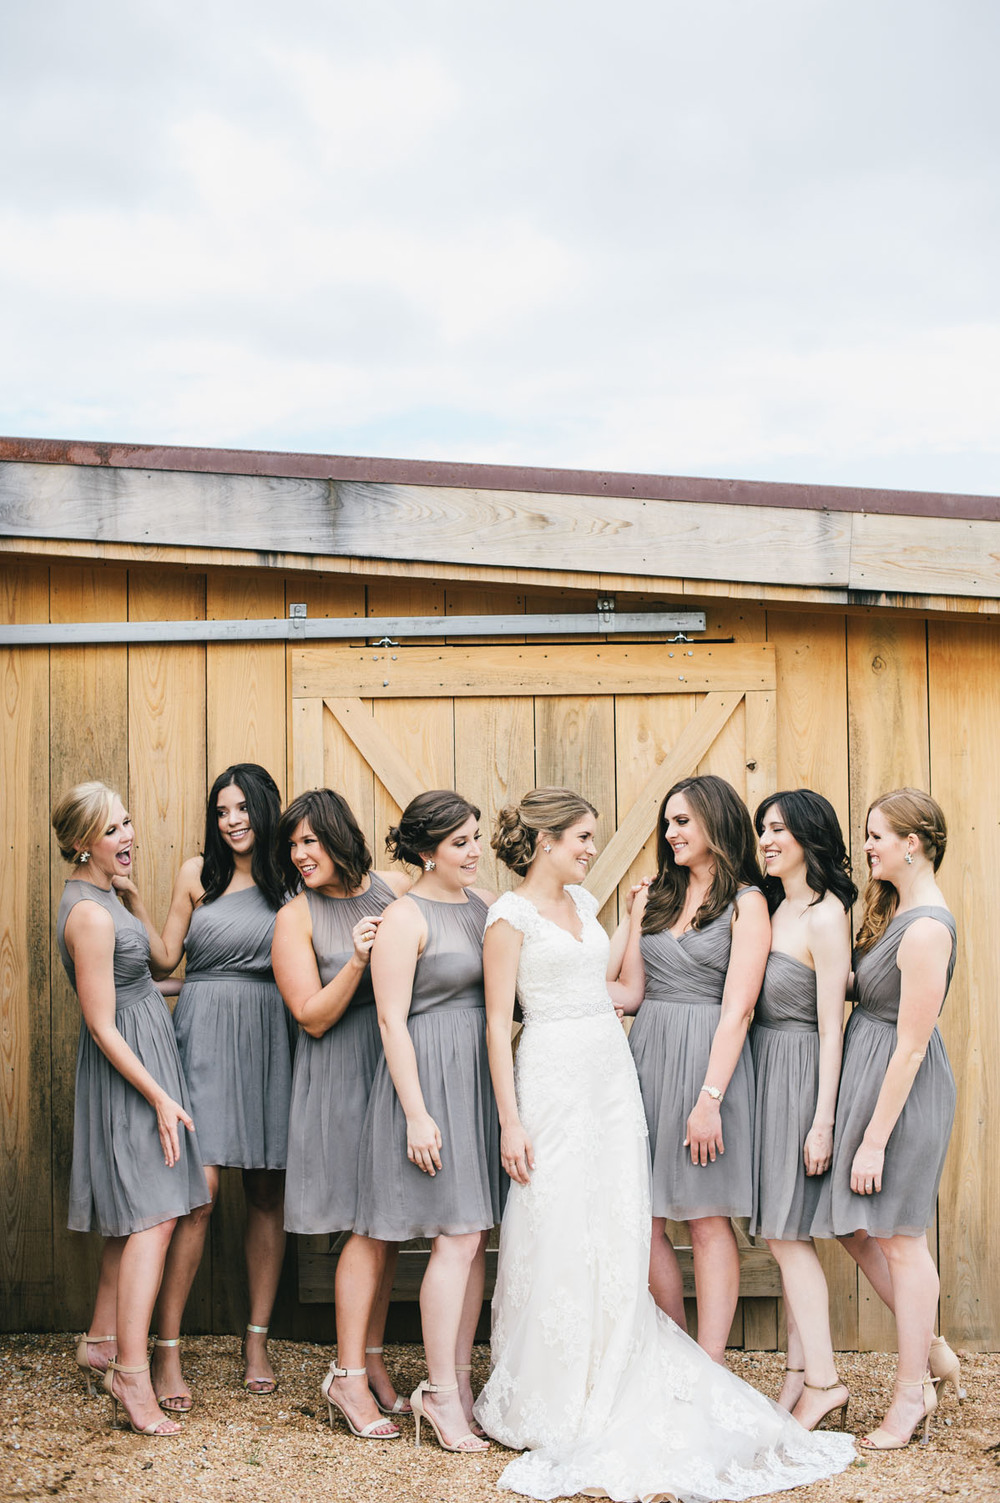 Gray bridesmaids knee-length dress